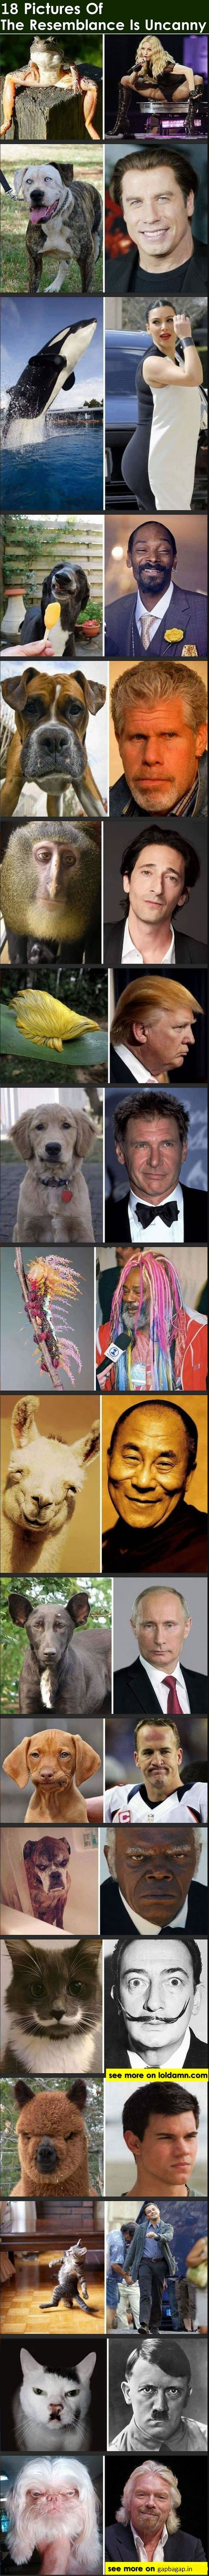 Funny Pictures Of Celebs vs. Animals